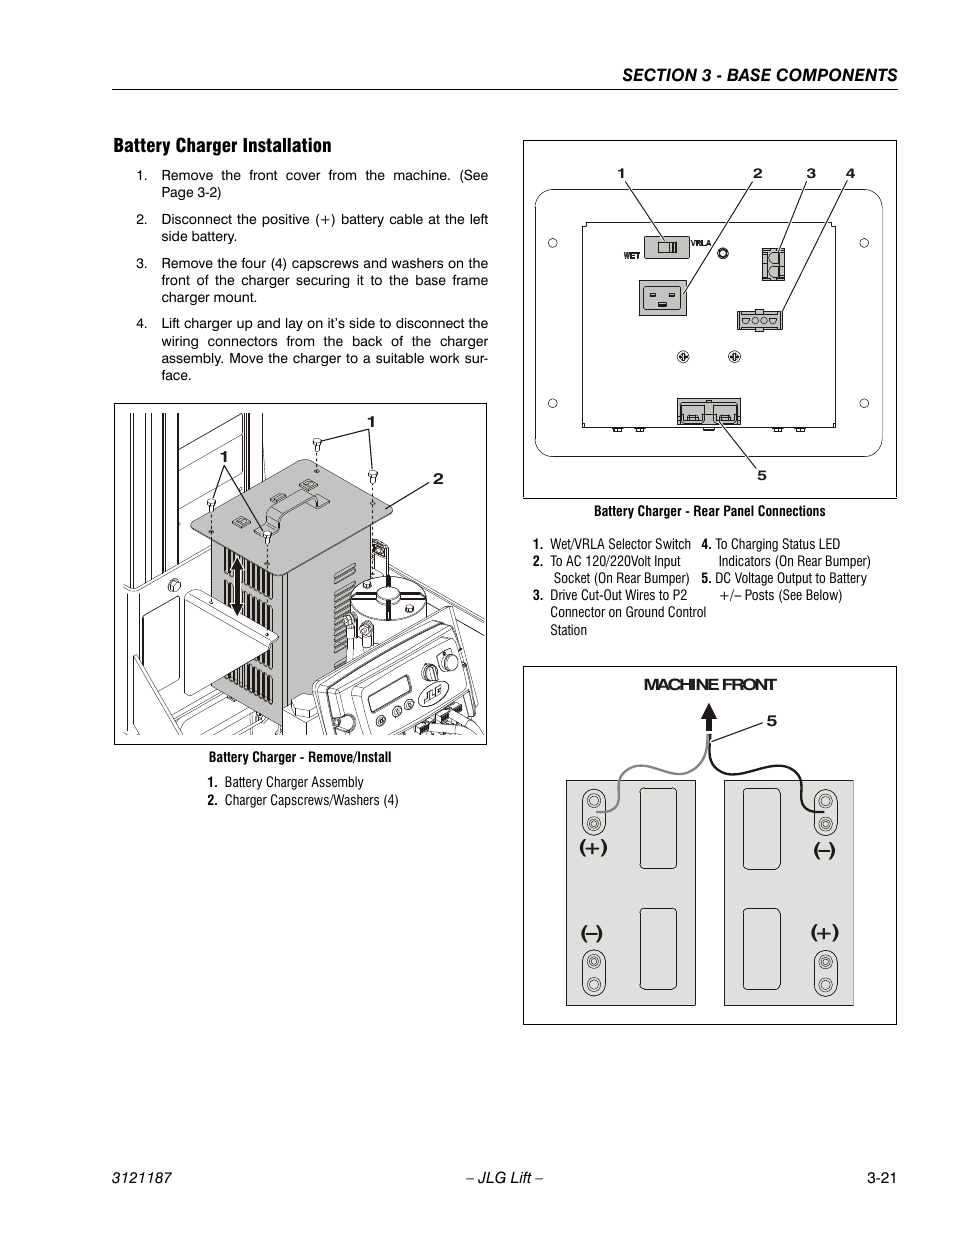 onboard battery charger wiring diagram dayton battery charger wiring diagram | wiring library